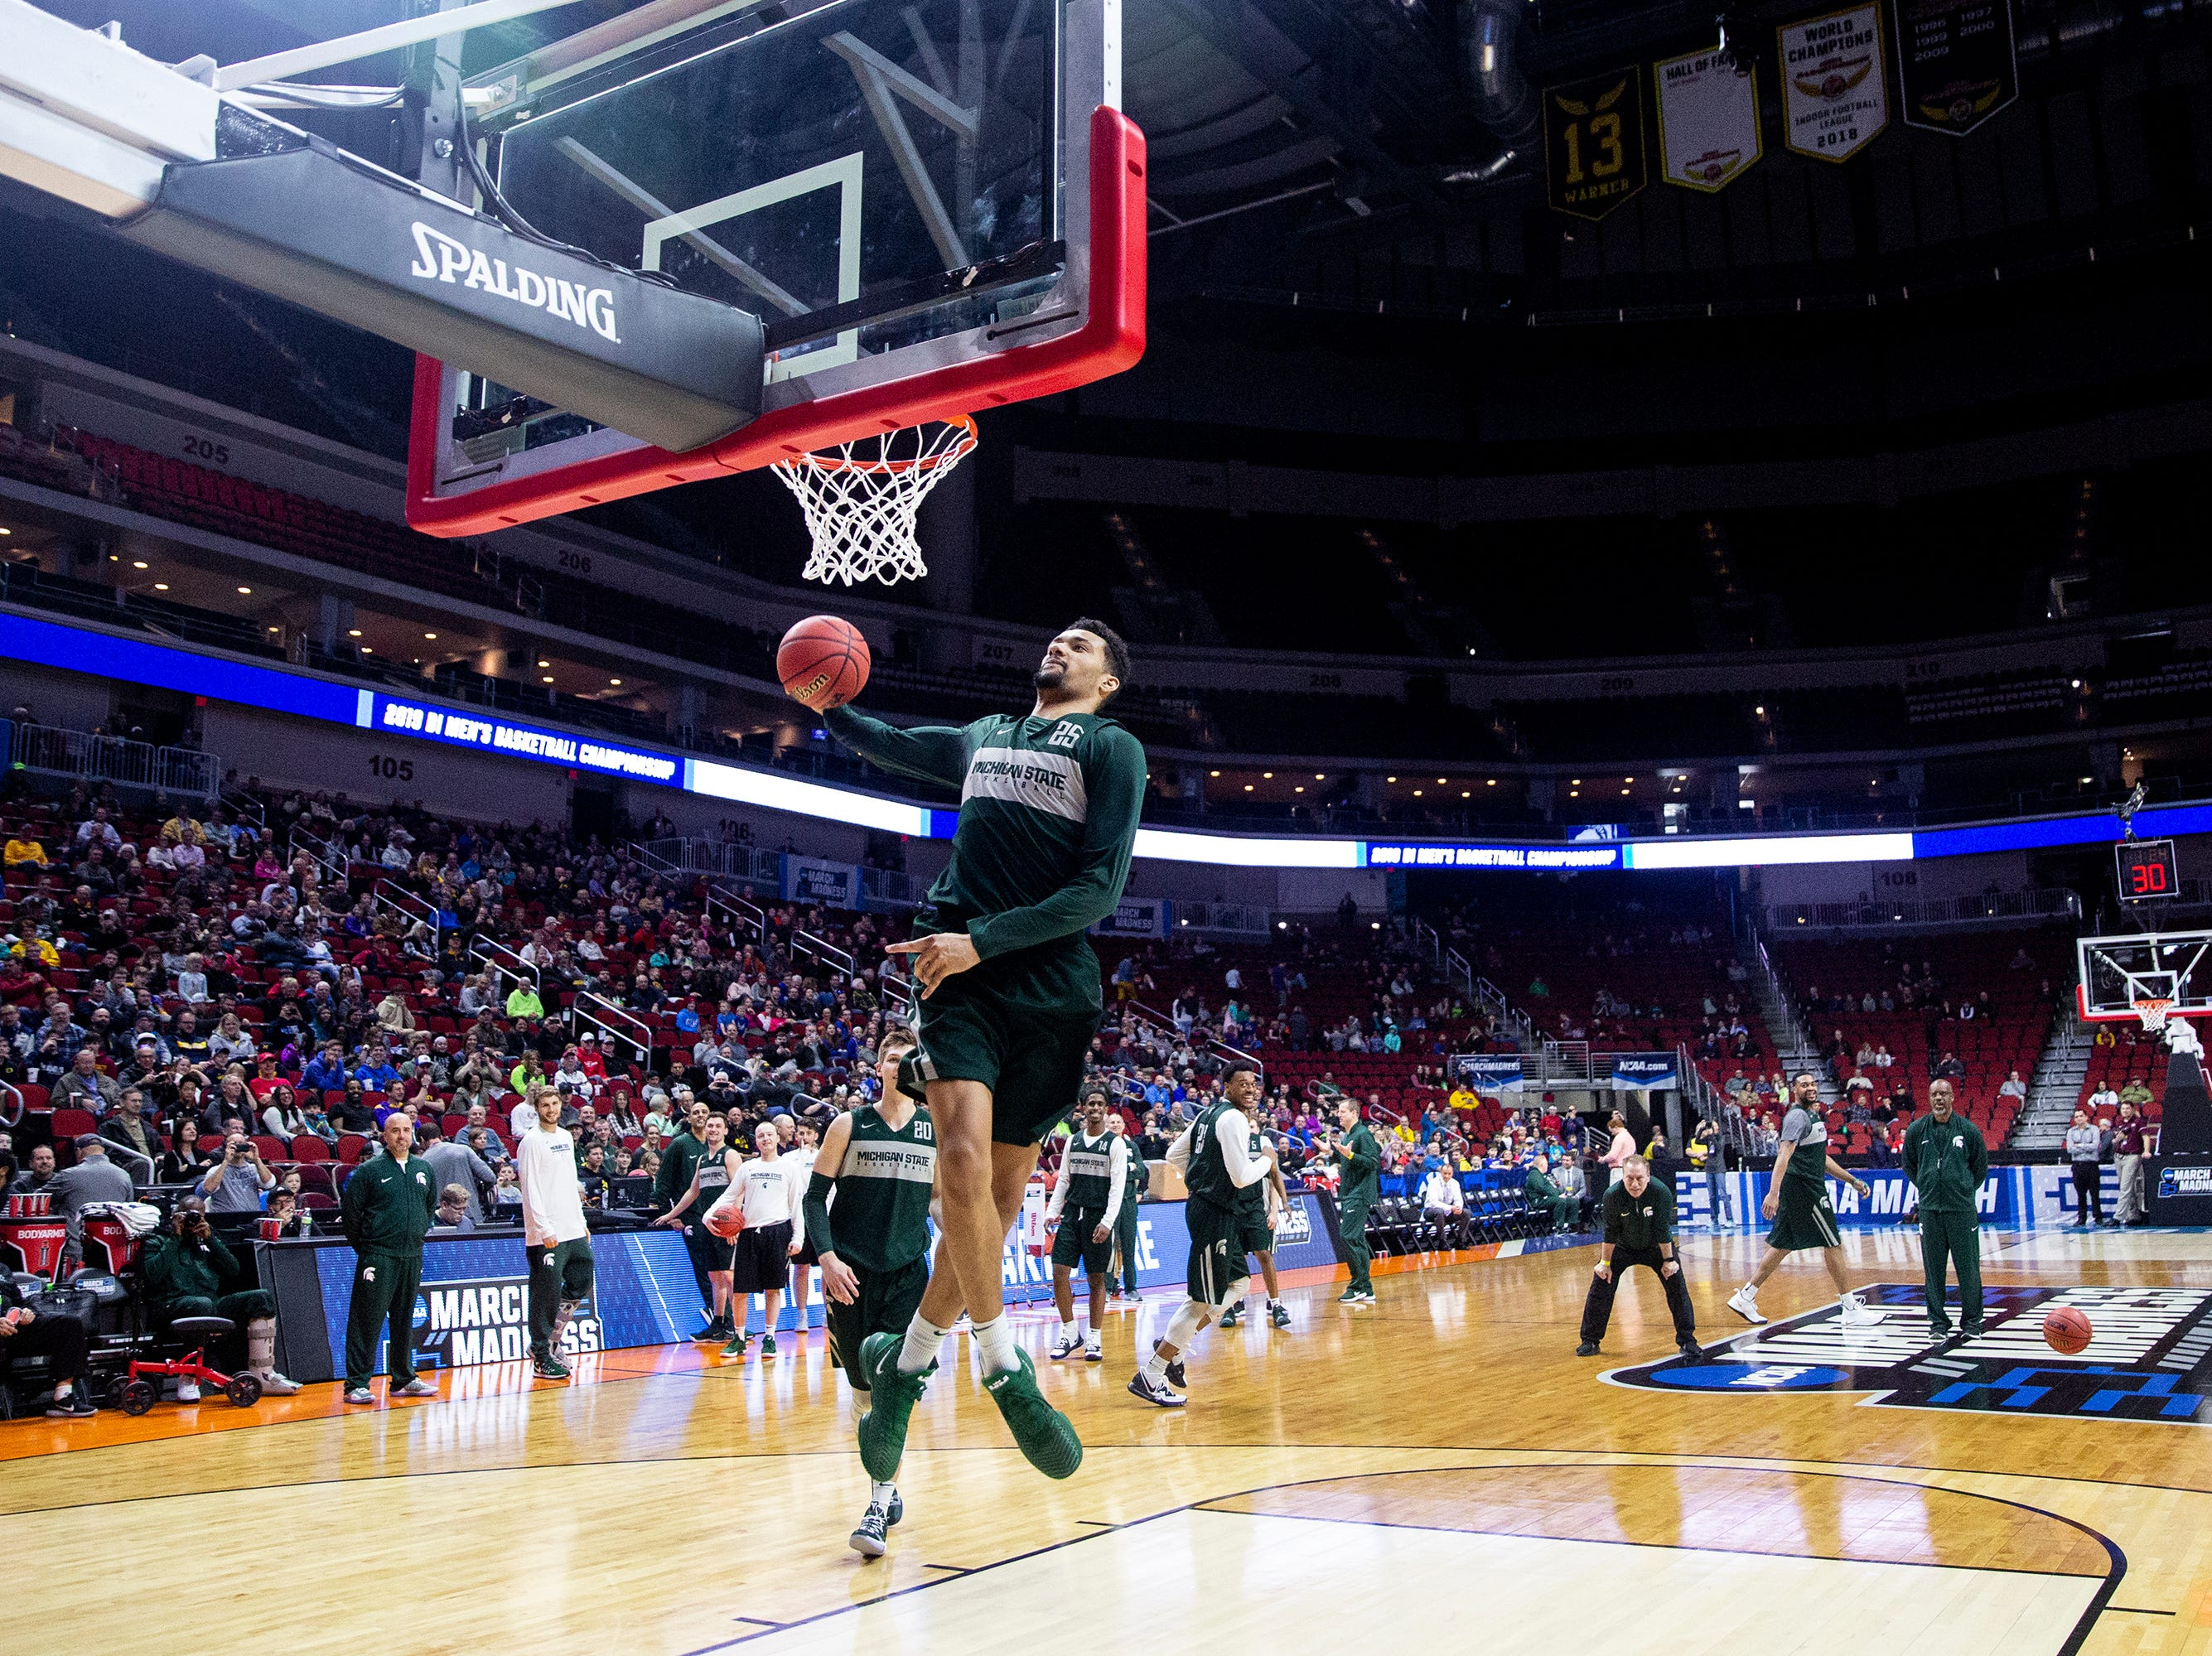 Michigan State's Kenny Goins shoots the ball during Michigan State's open practice before the first round of the NCAA Men's Basketball Tournament on Wednesday, March 20, 2019, at Wells Fargo Arena in Des Moines, Iowa.